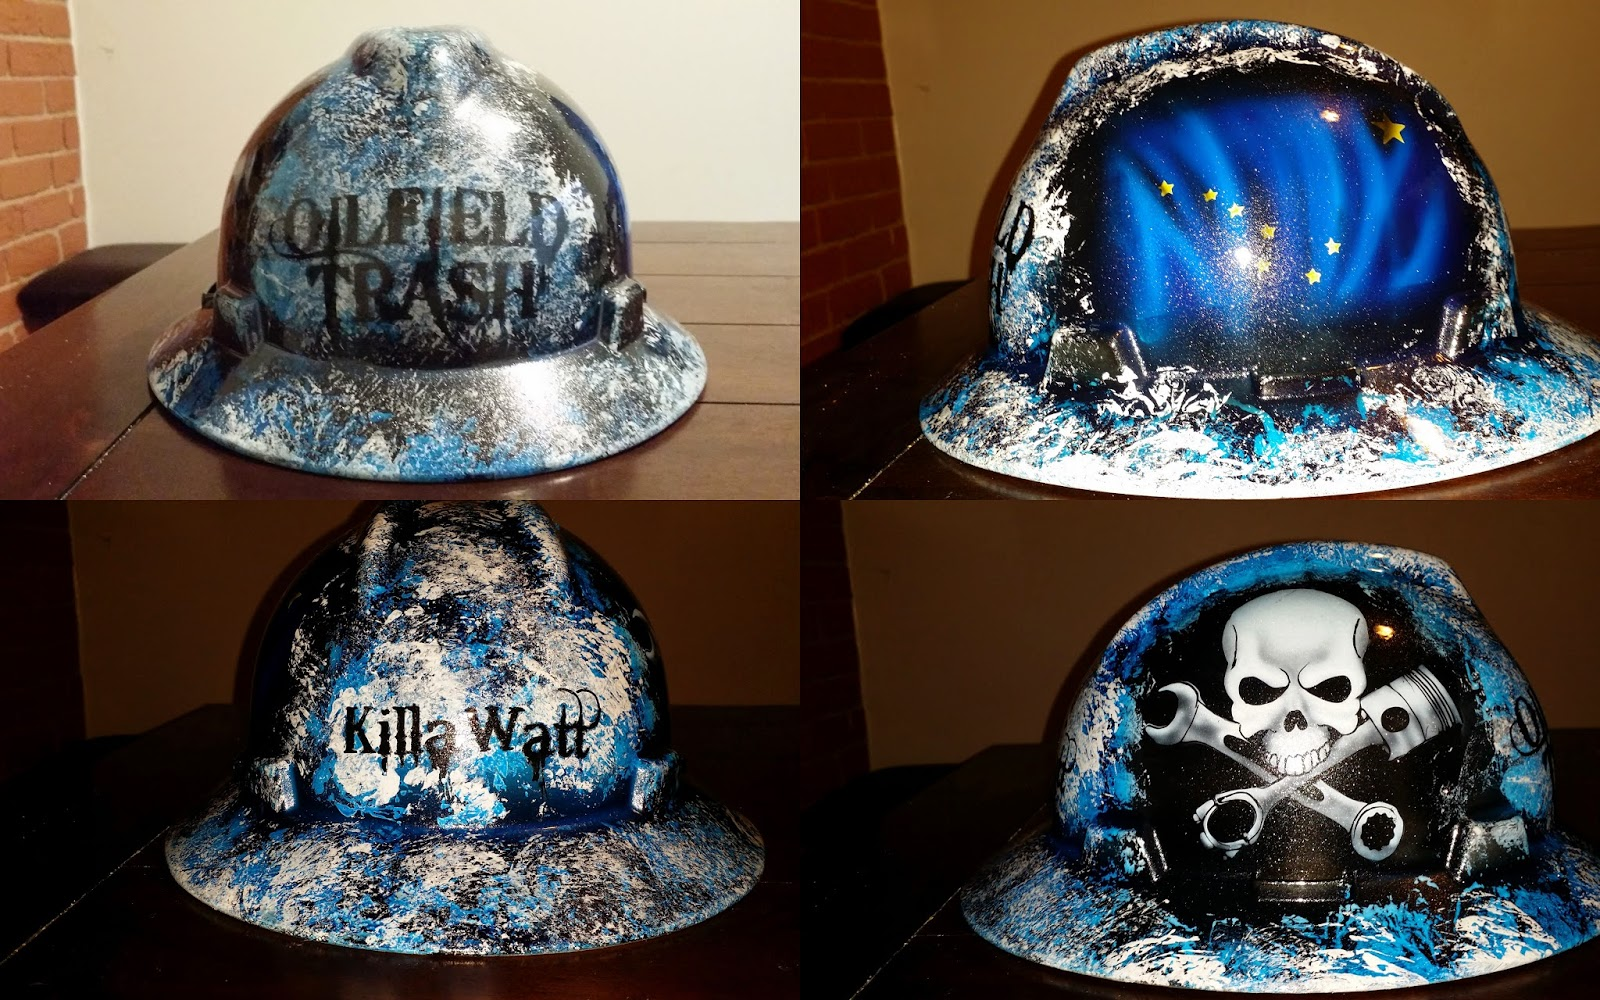 Zimmer DesignZ Custom Paint: Lots of new cool hard hat designs